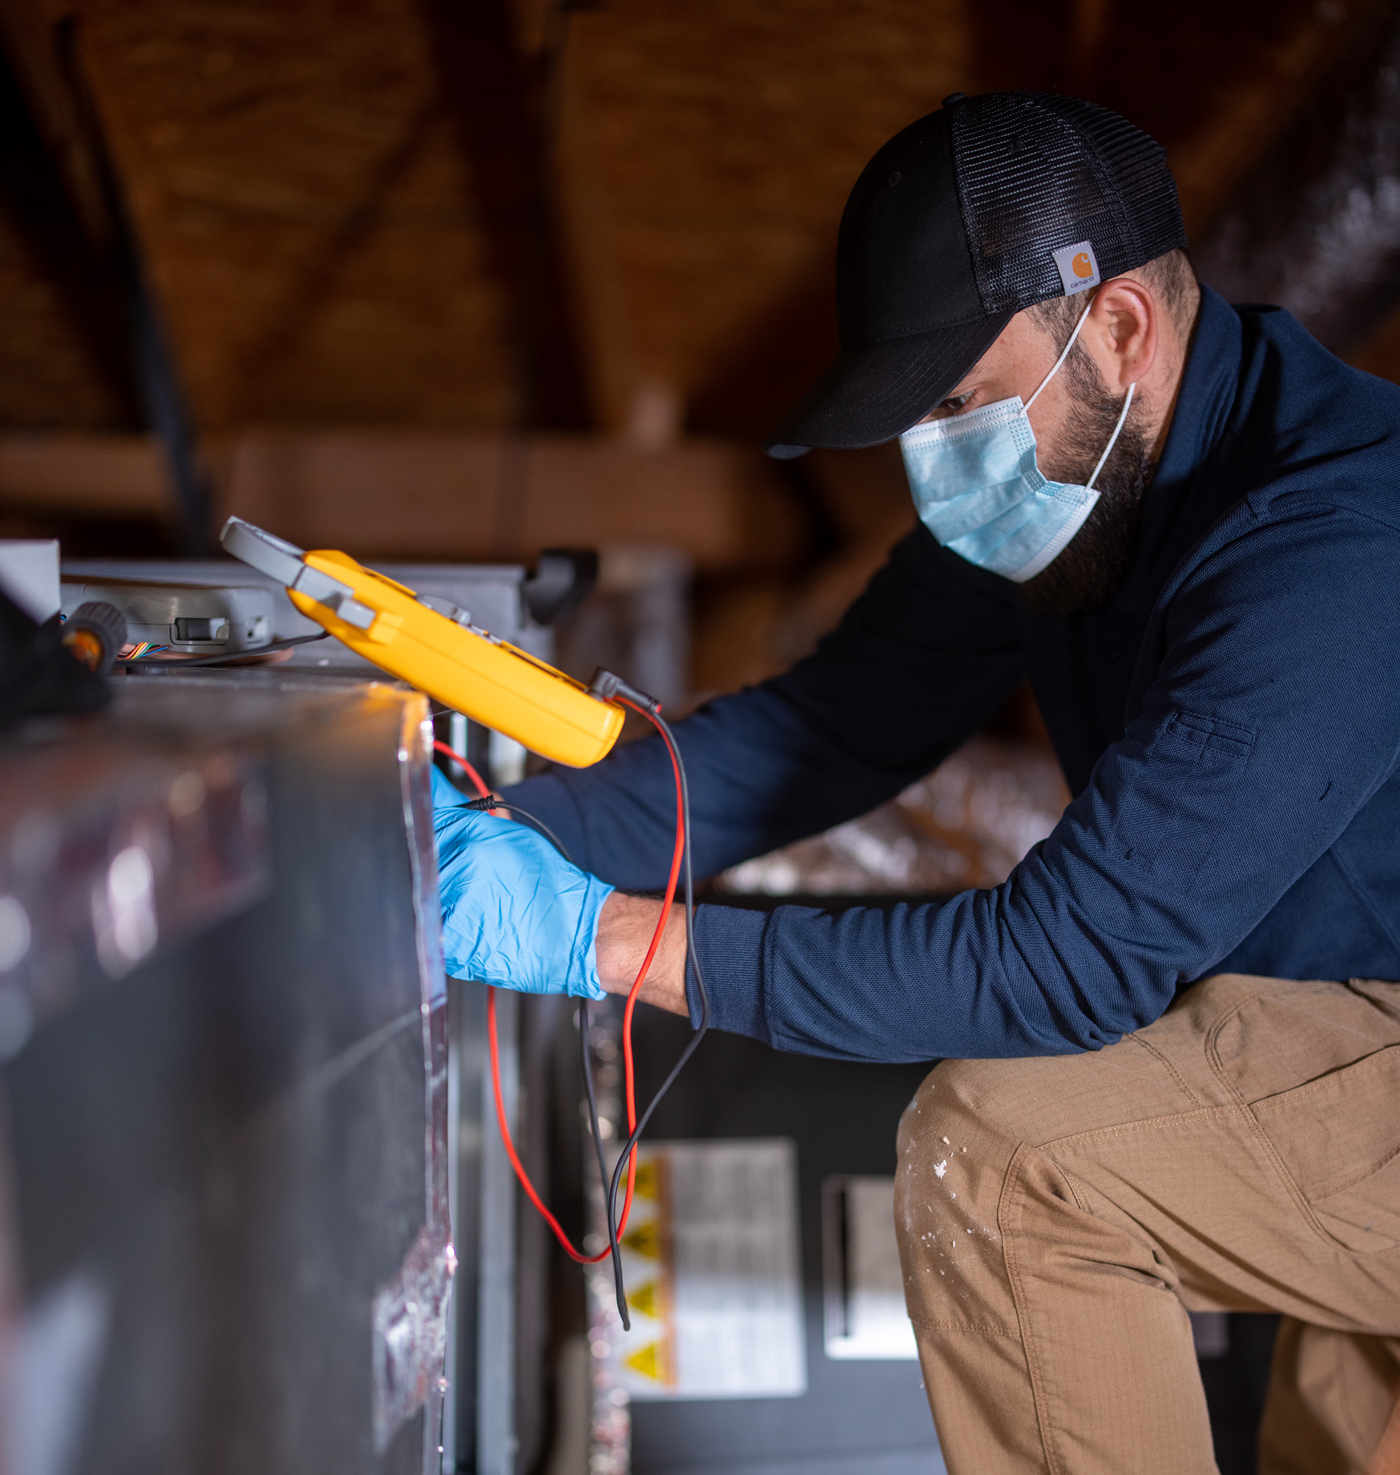 heater reapir technician in attic testing hvac system